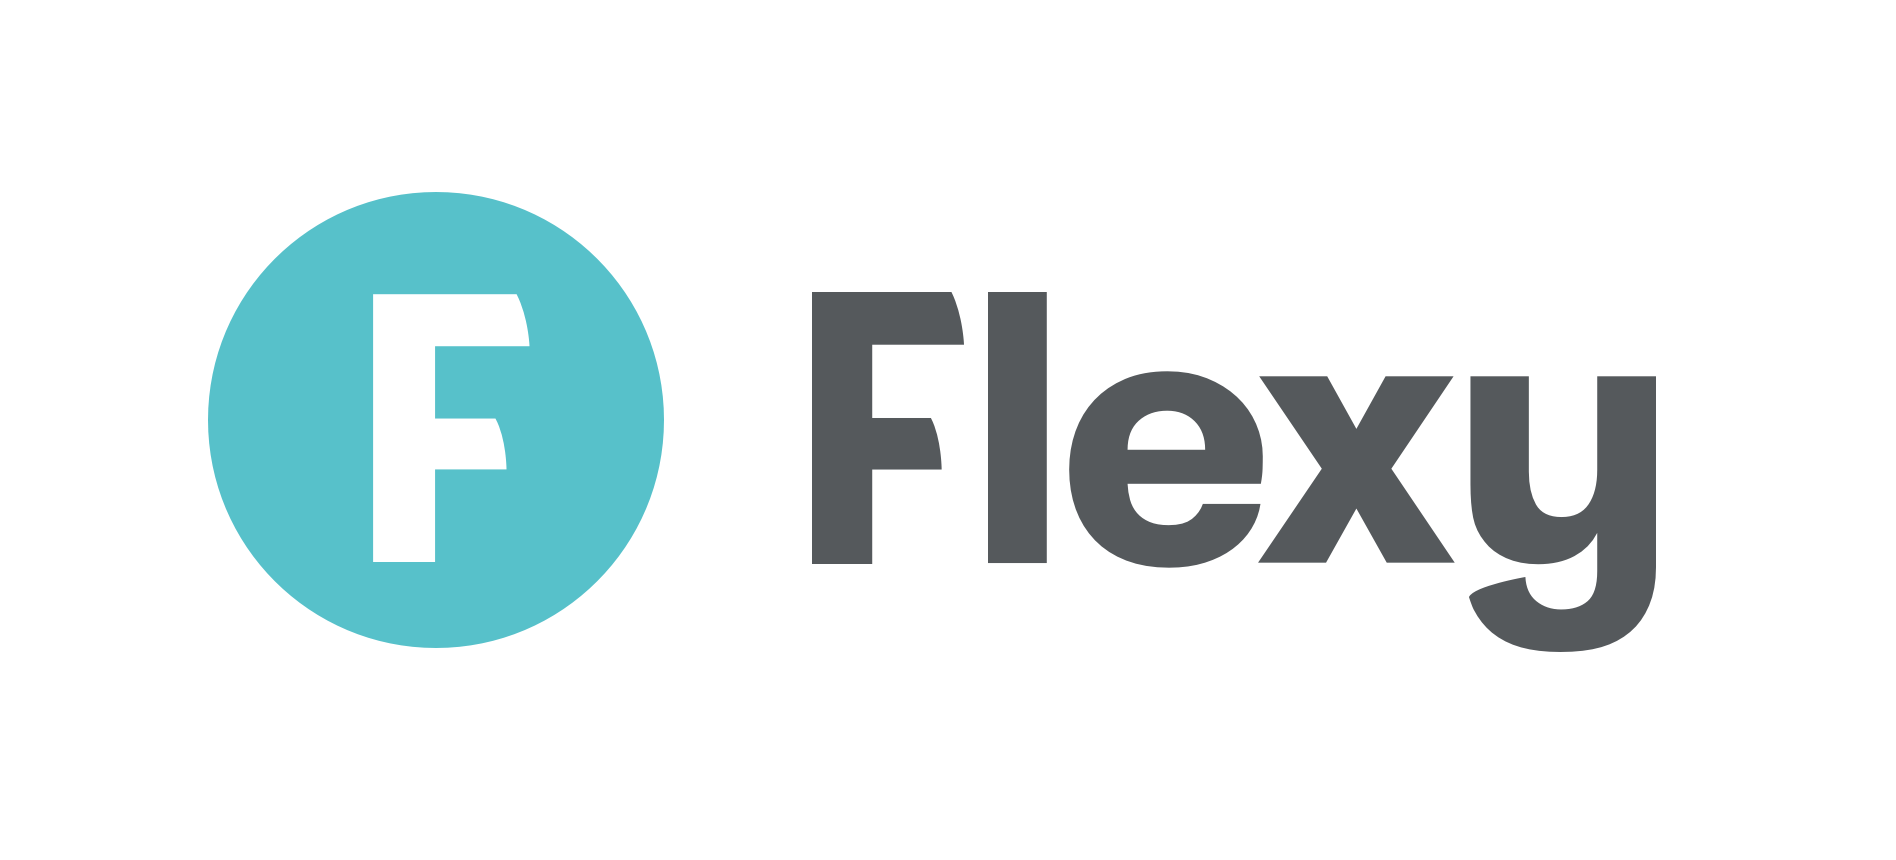 Flexy logo, colour